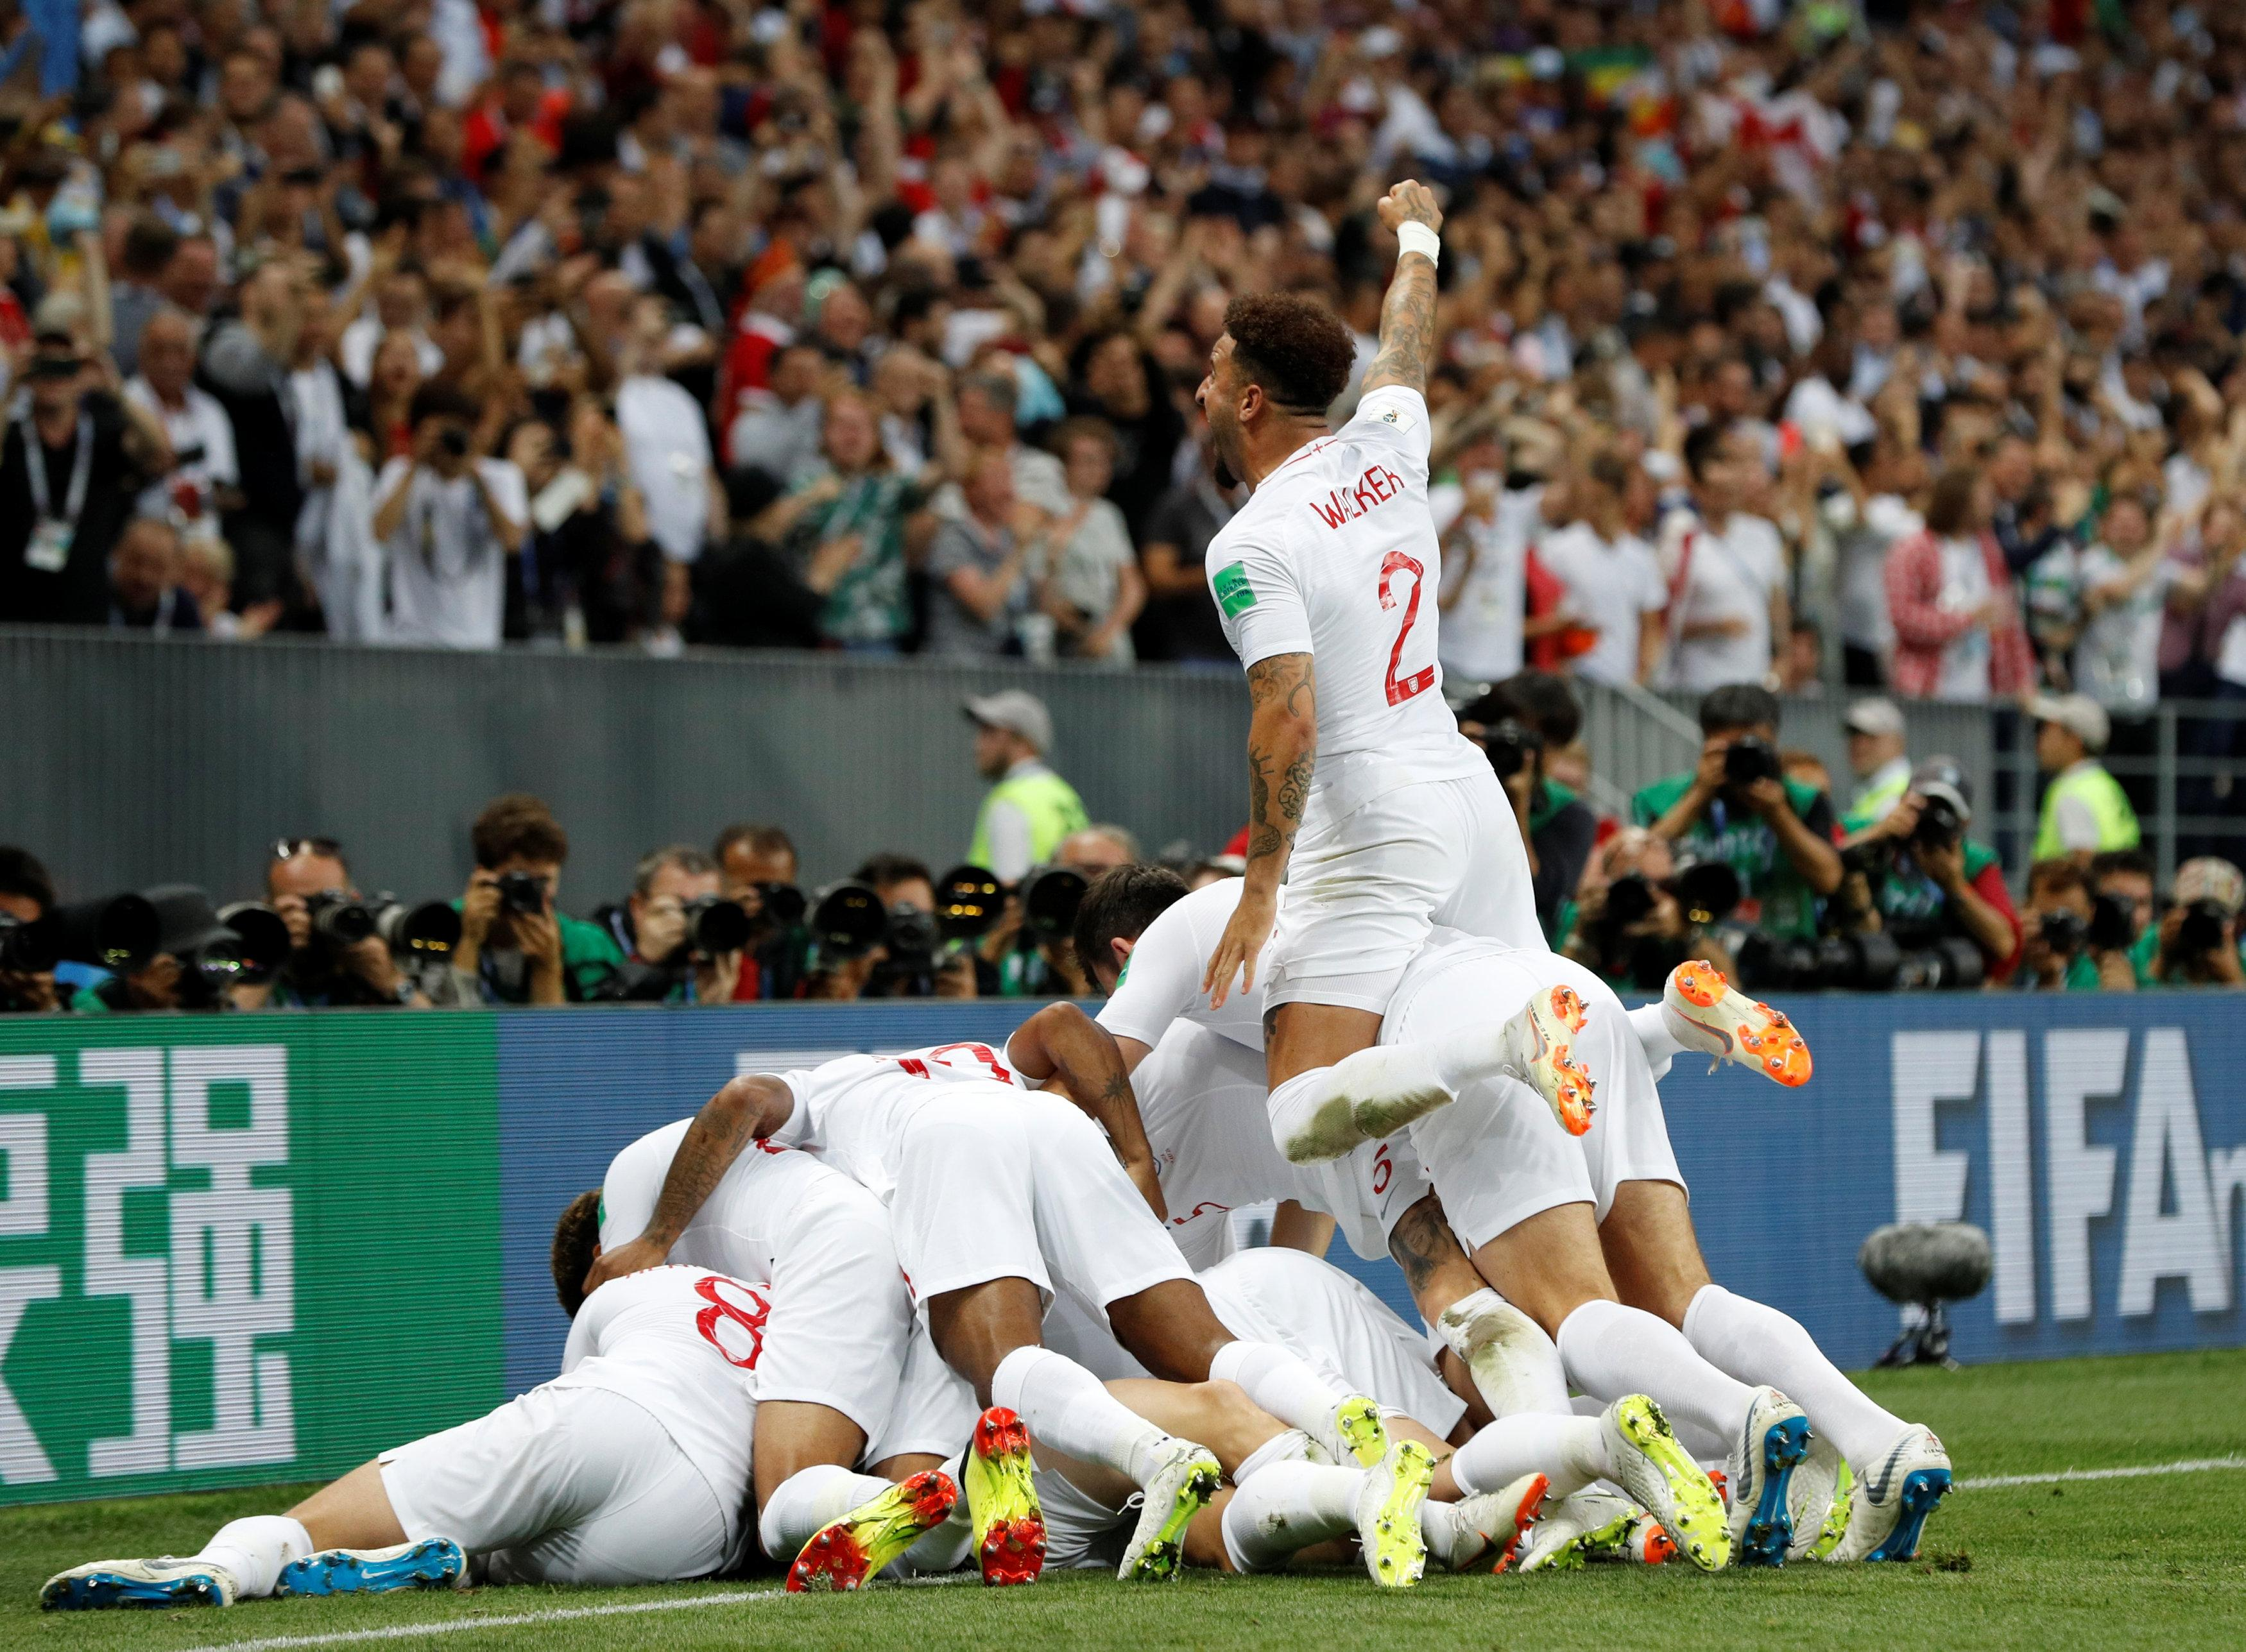 England celebrated wildly before quickly regaining their composure, with the vast remainder of the game still to come